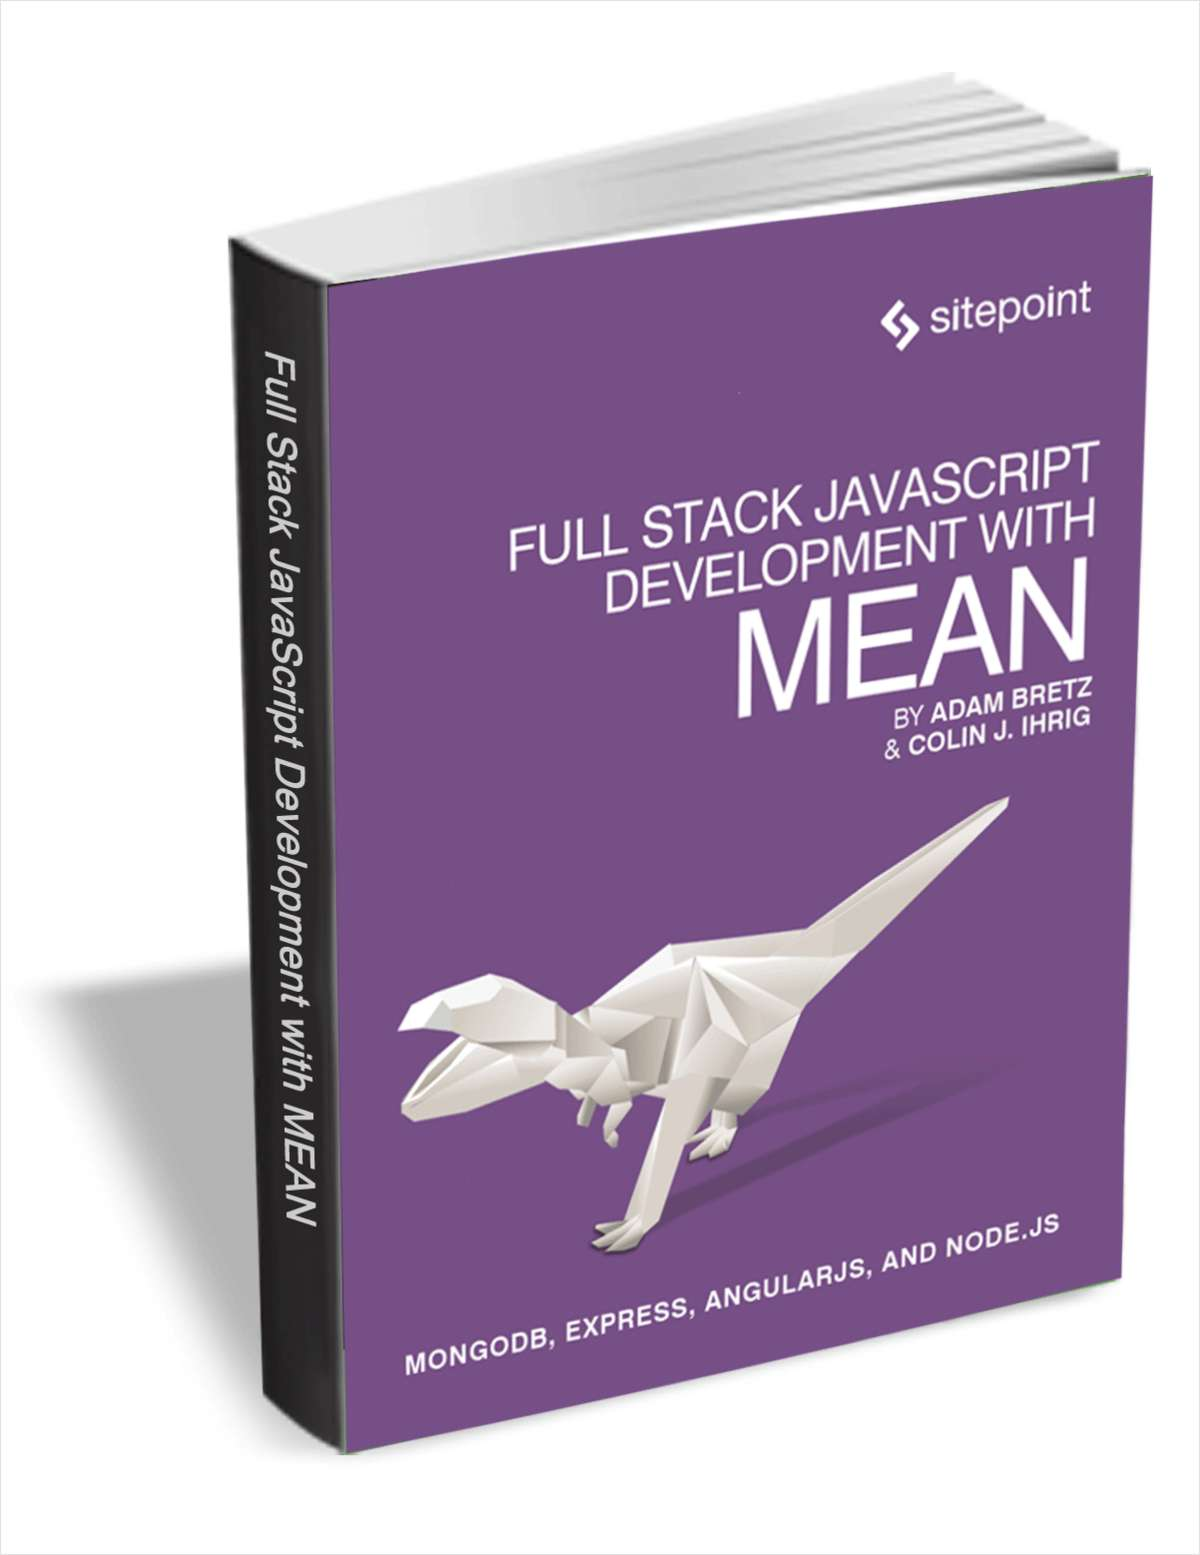 Full Stack JavaScript Development with MEAN (FREE eBook, $30 Value!)